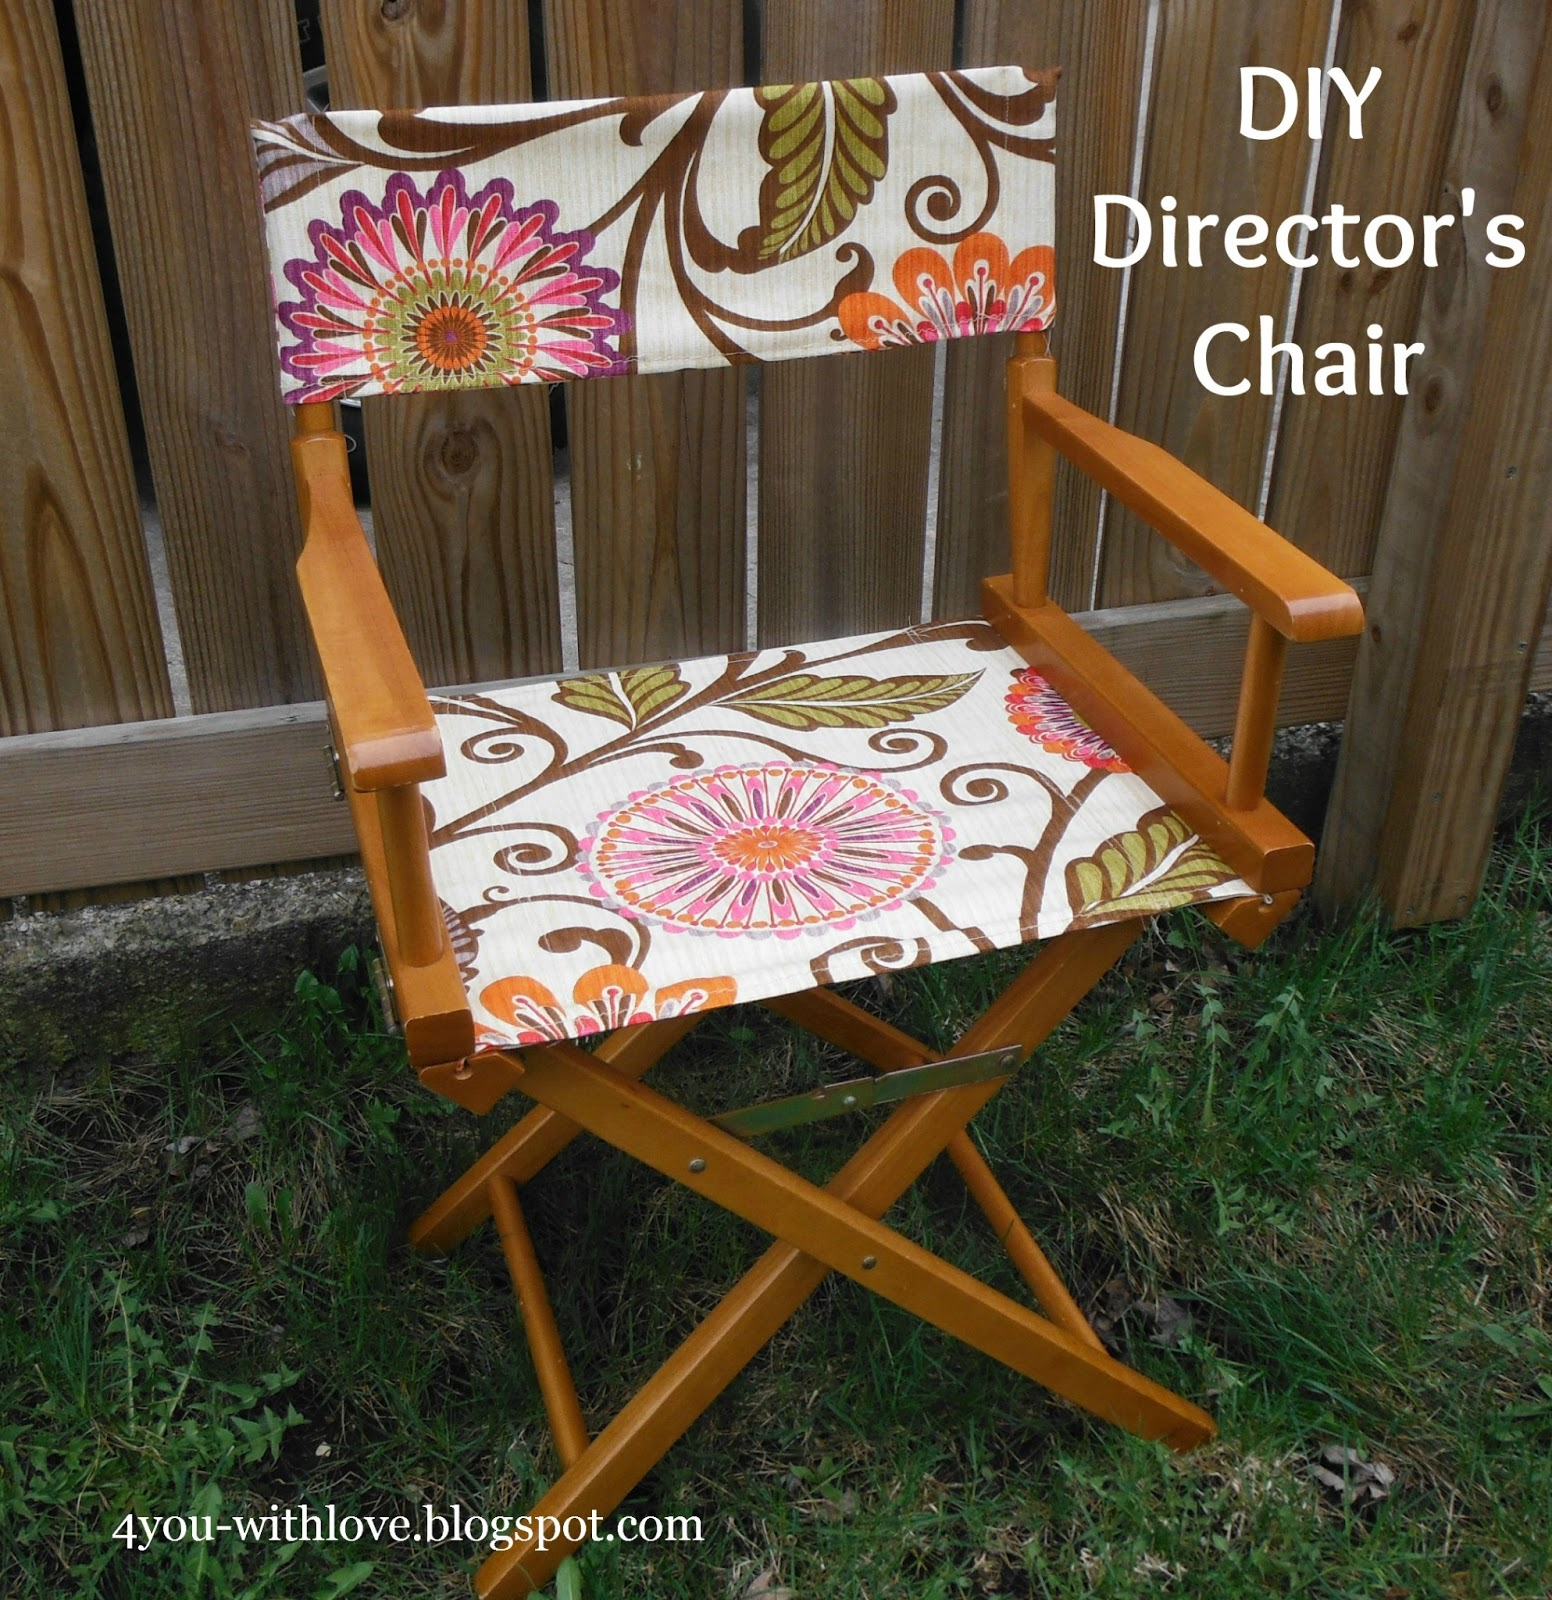 Attractive Directors Chair Replacement Canvas for Best Director Chair Ideas: Directors Chair Canvas Replacement Covers | Directors Chair Replacement Canvas | Directors Chairs Covers